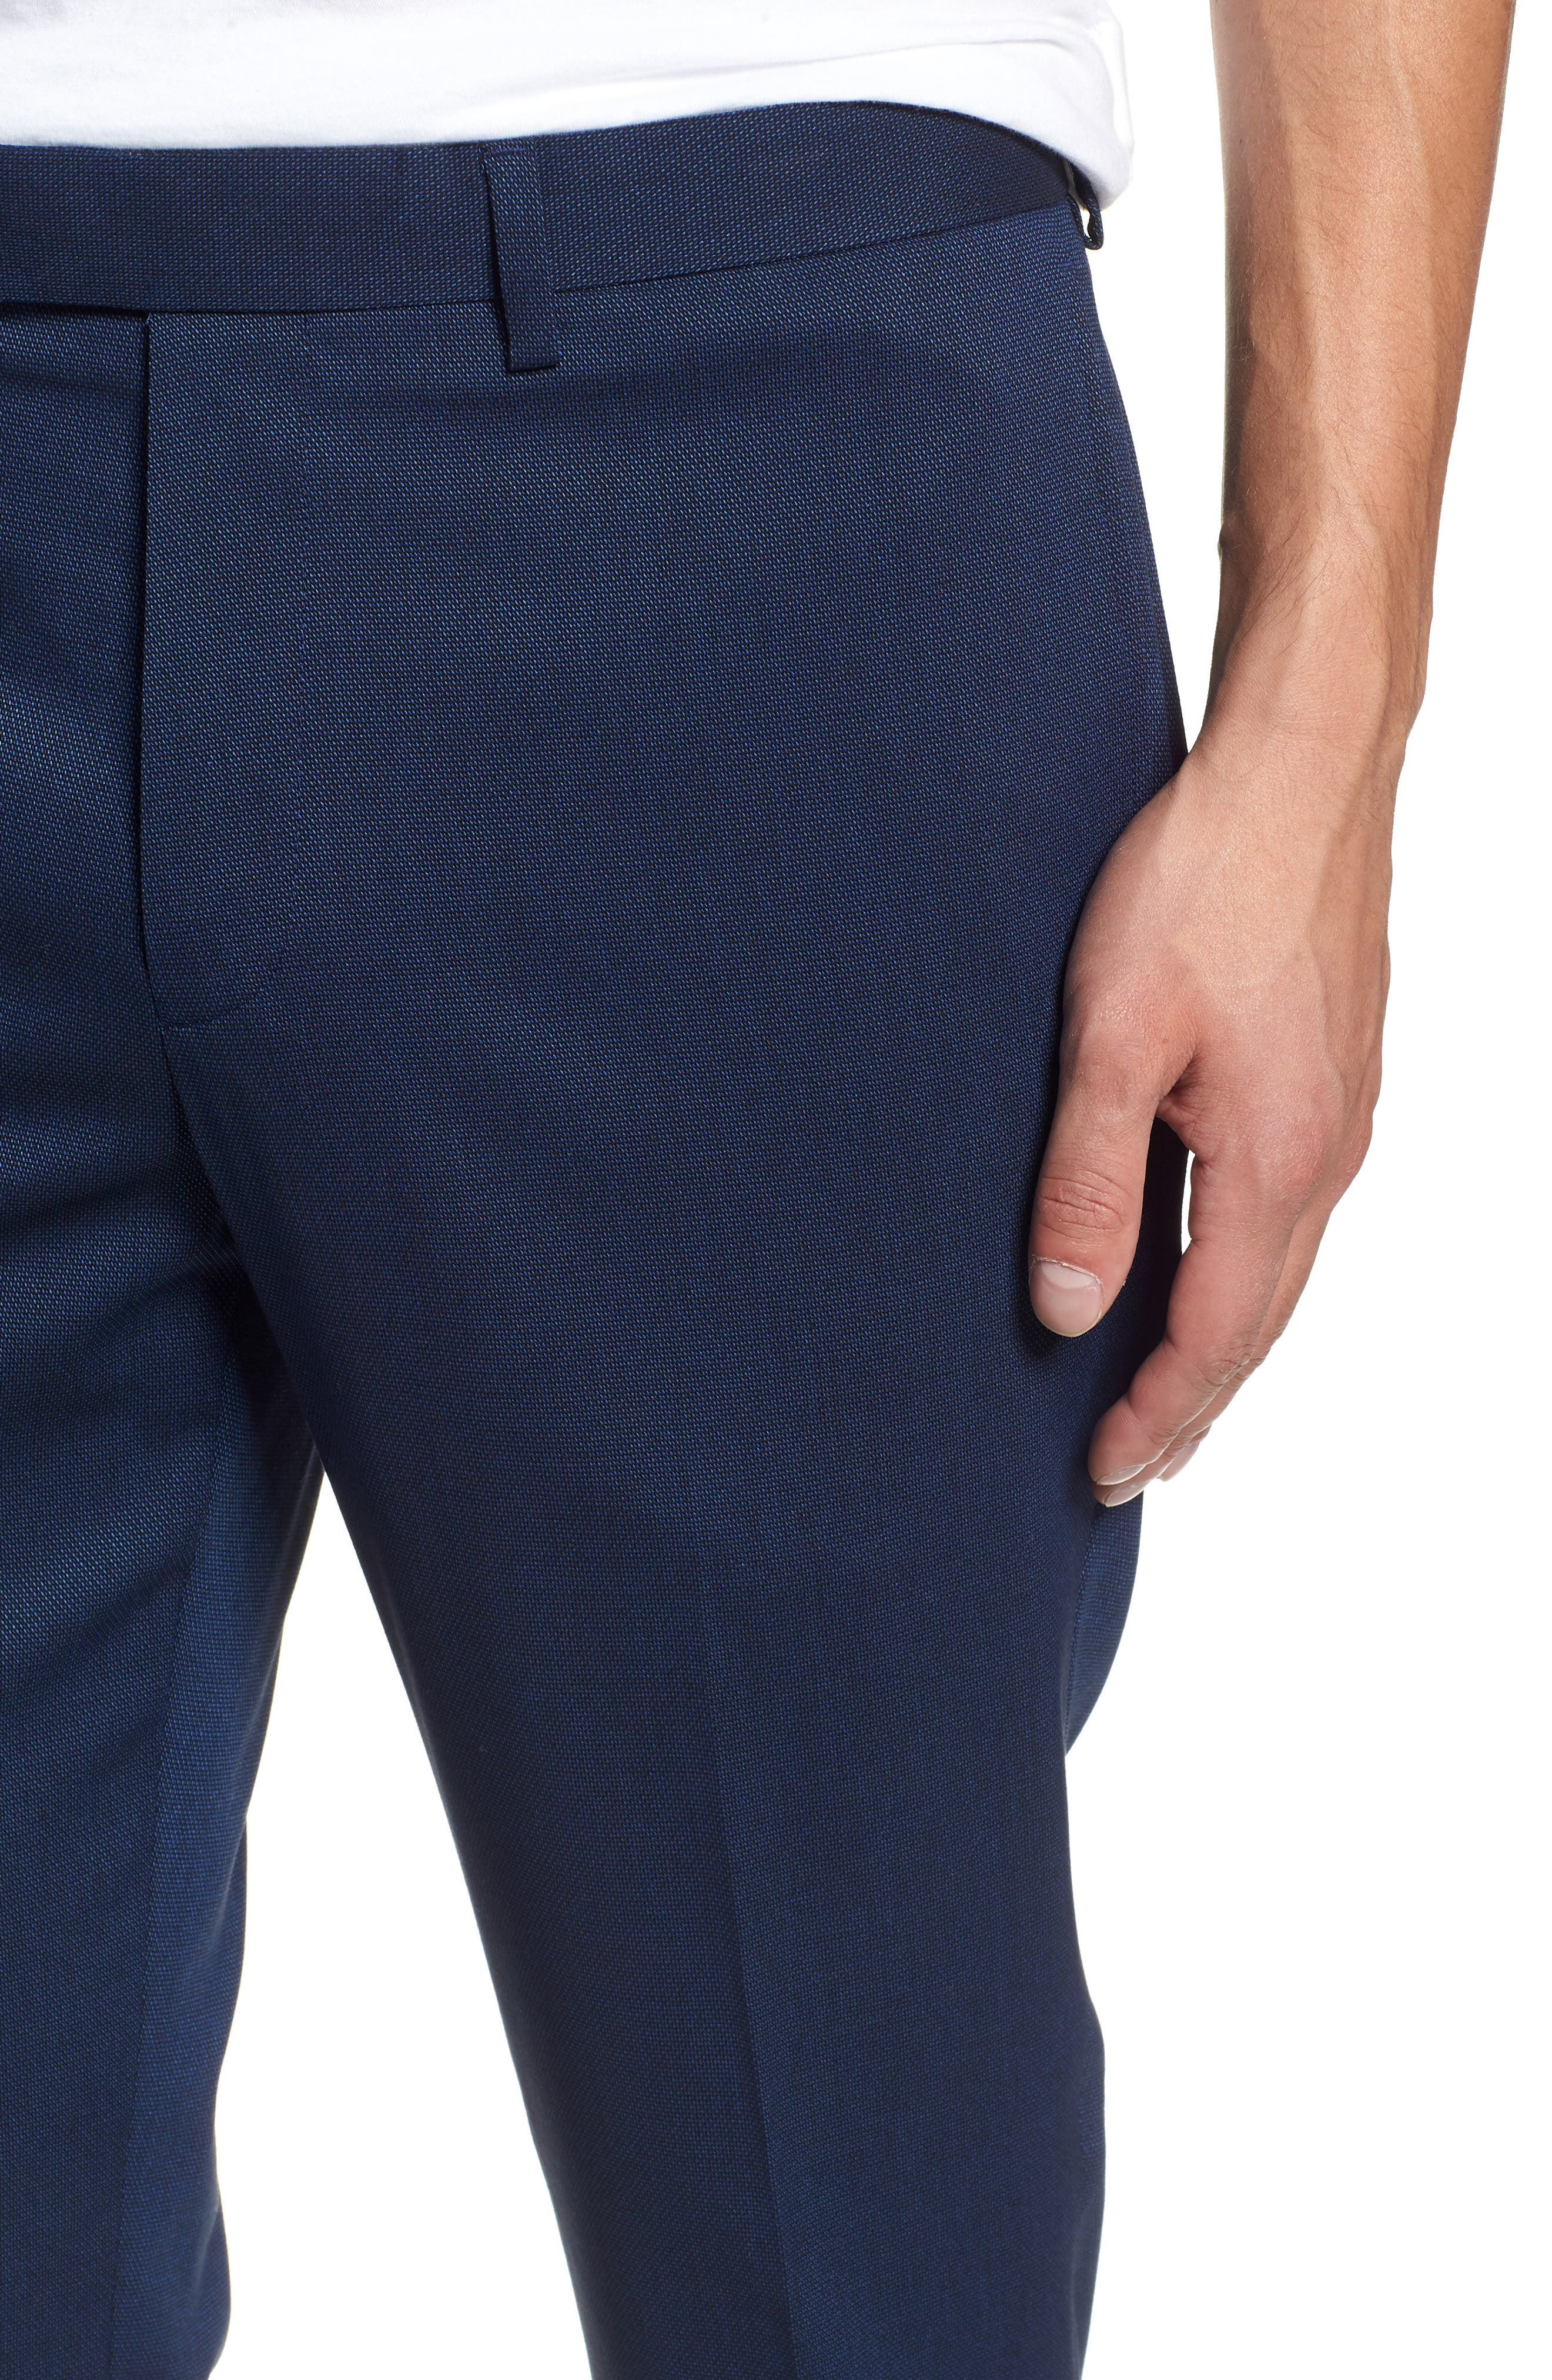 TOPMAN, Skinny Fit Suit Pants, Alternate thumbnail 4, color, MID BLUE